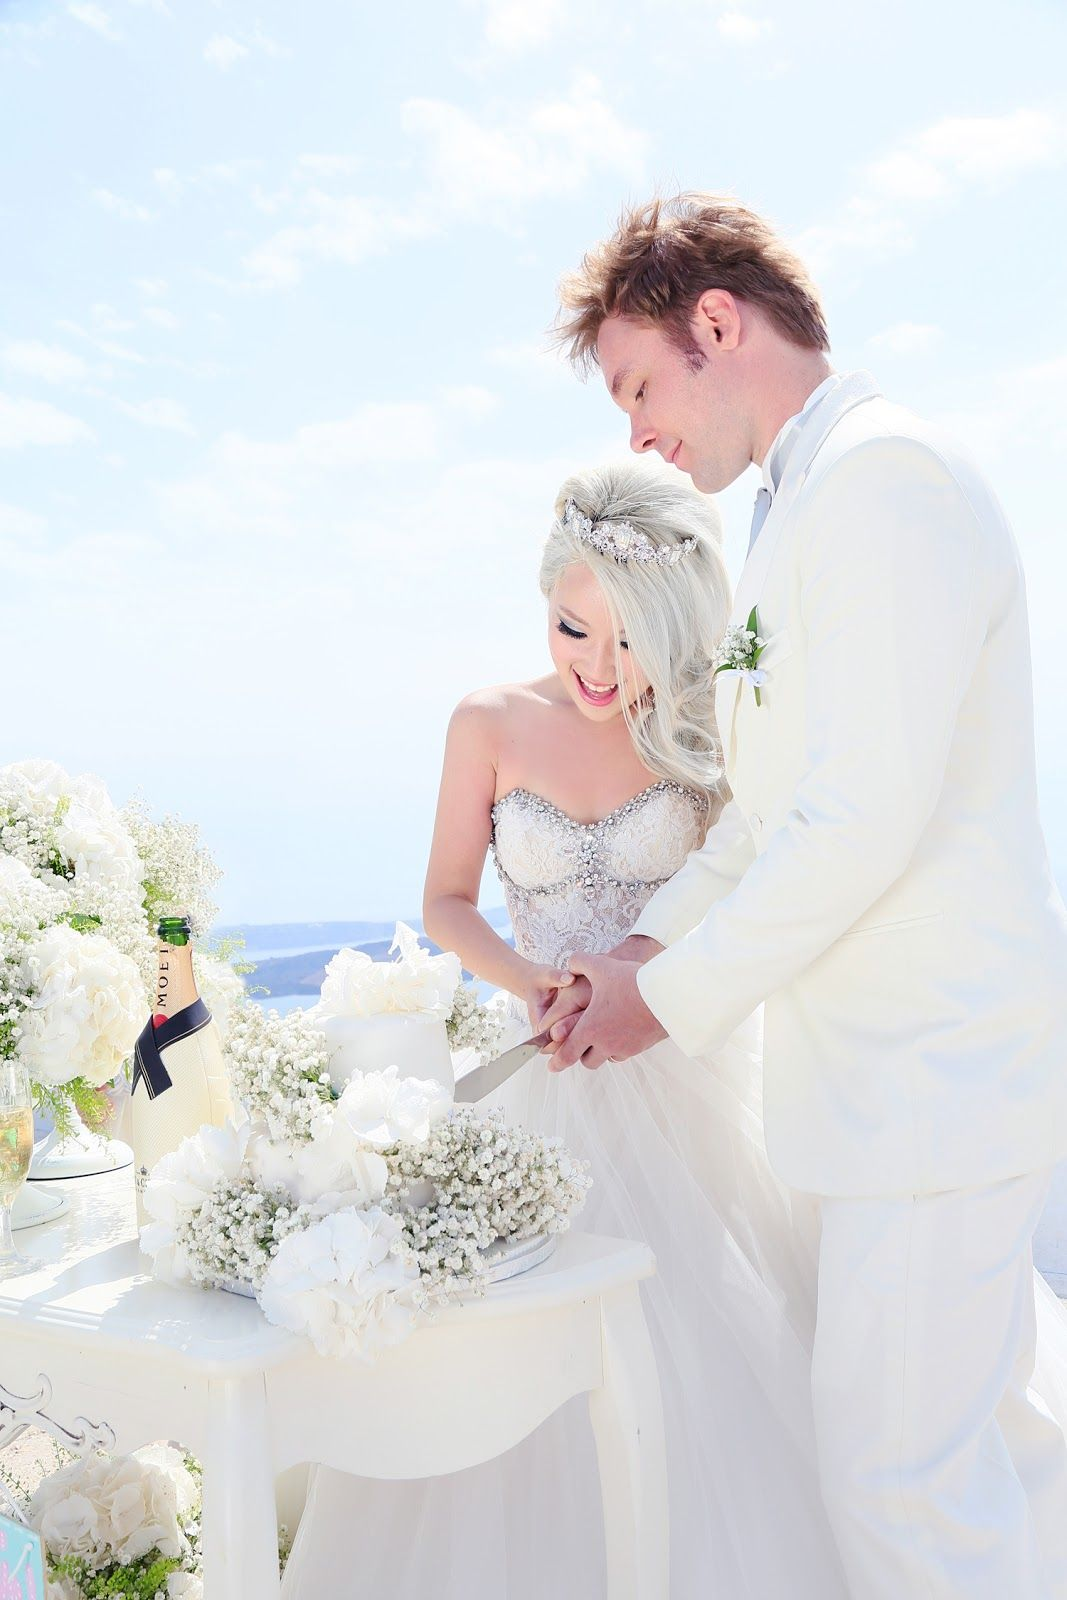 Xiaxue S Amazing Wedding Shoot With Sunrise Greece In Santorini Xiaxue Blogspot Com Wedding Photoshoot Wedding Greece Wedding